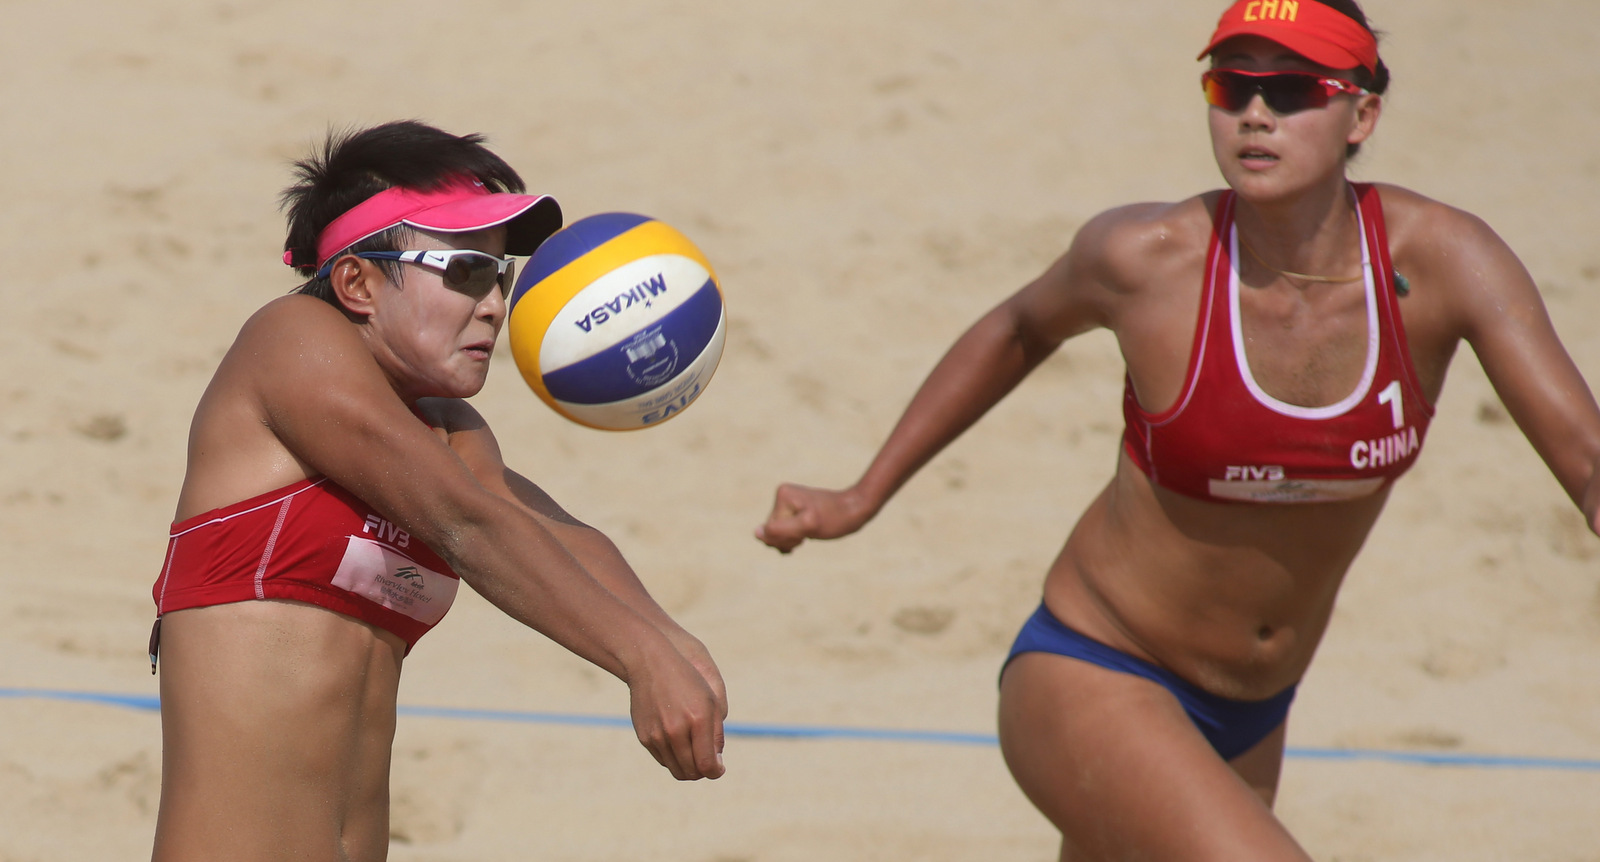 Xue Chen & Xia Xinyi Chinese beach volleyball players